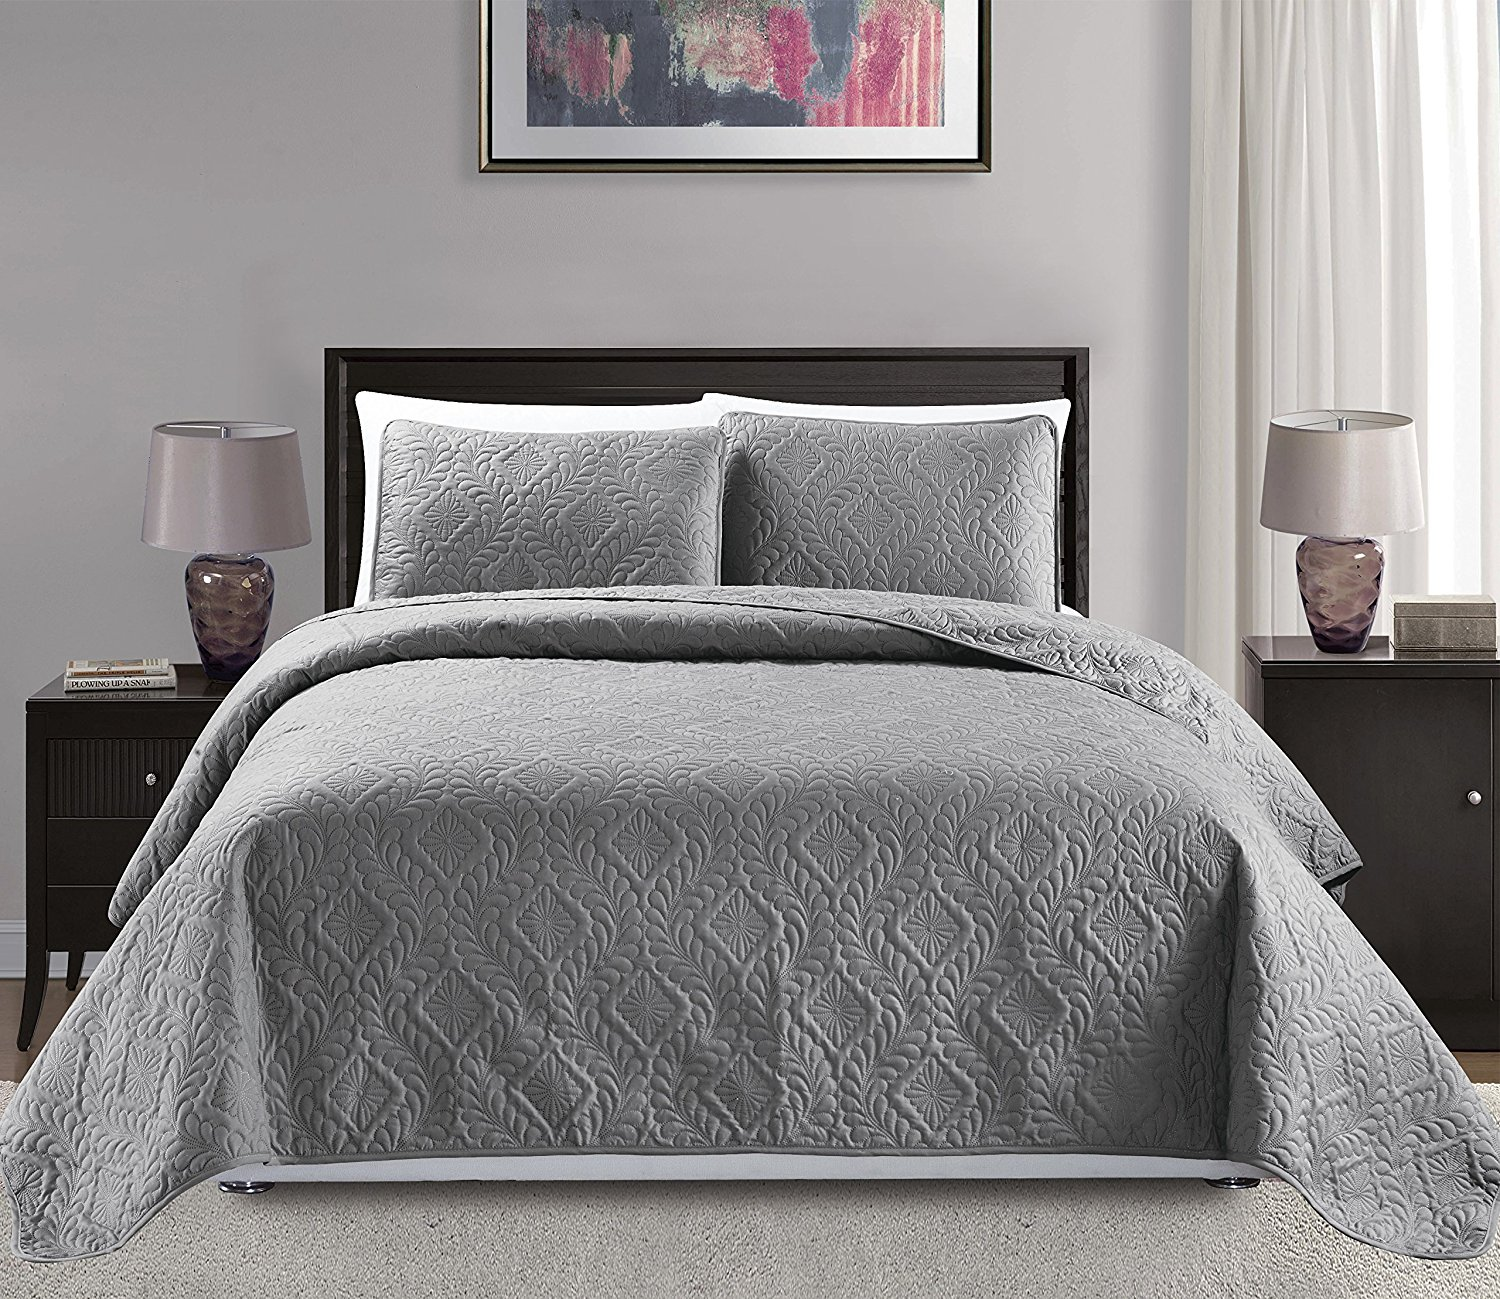 Etonnant Fancy Linen 3 Pc Over Size Diamond Bedspread Bed Cover Embossed Solid Gray  New King/California King 118?x106?   Walmart.com